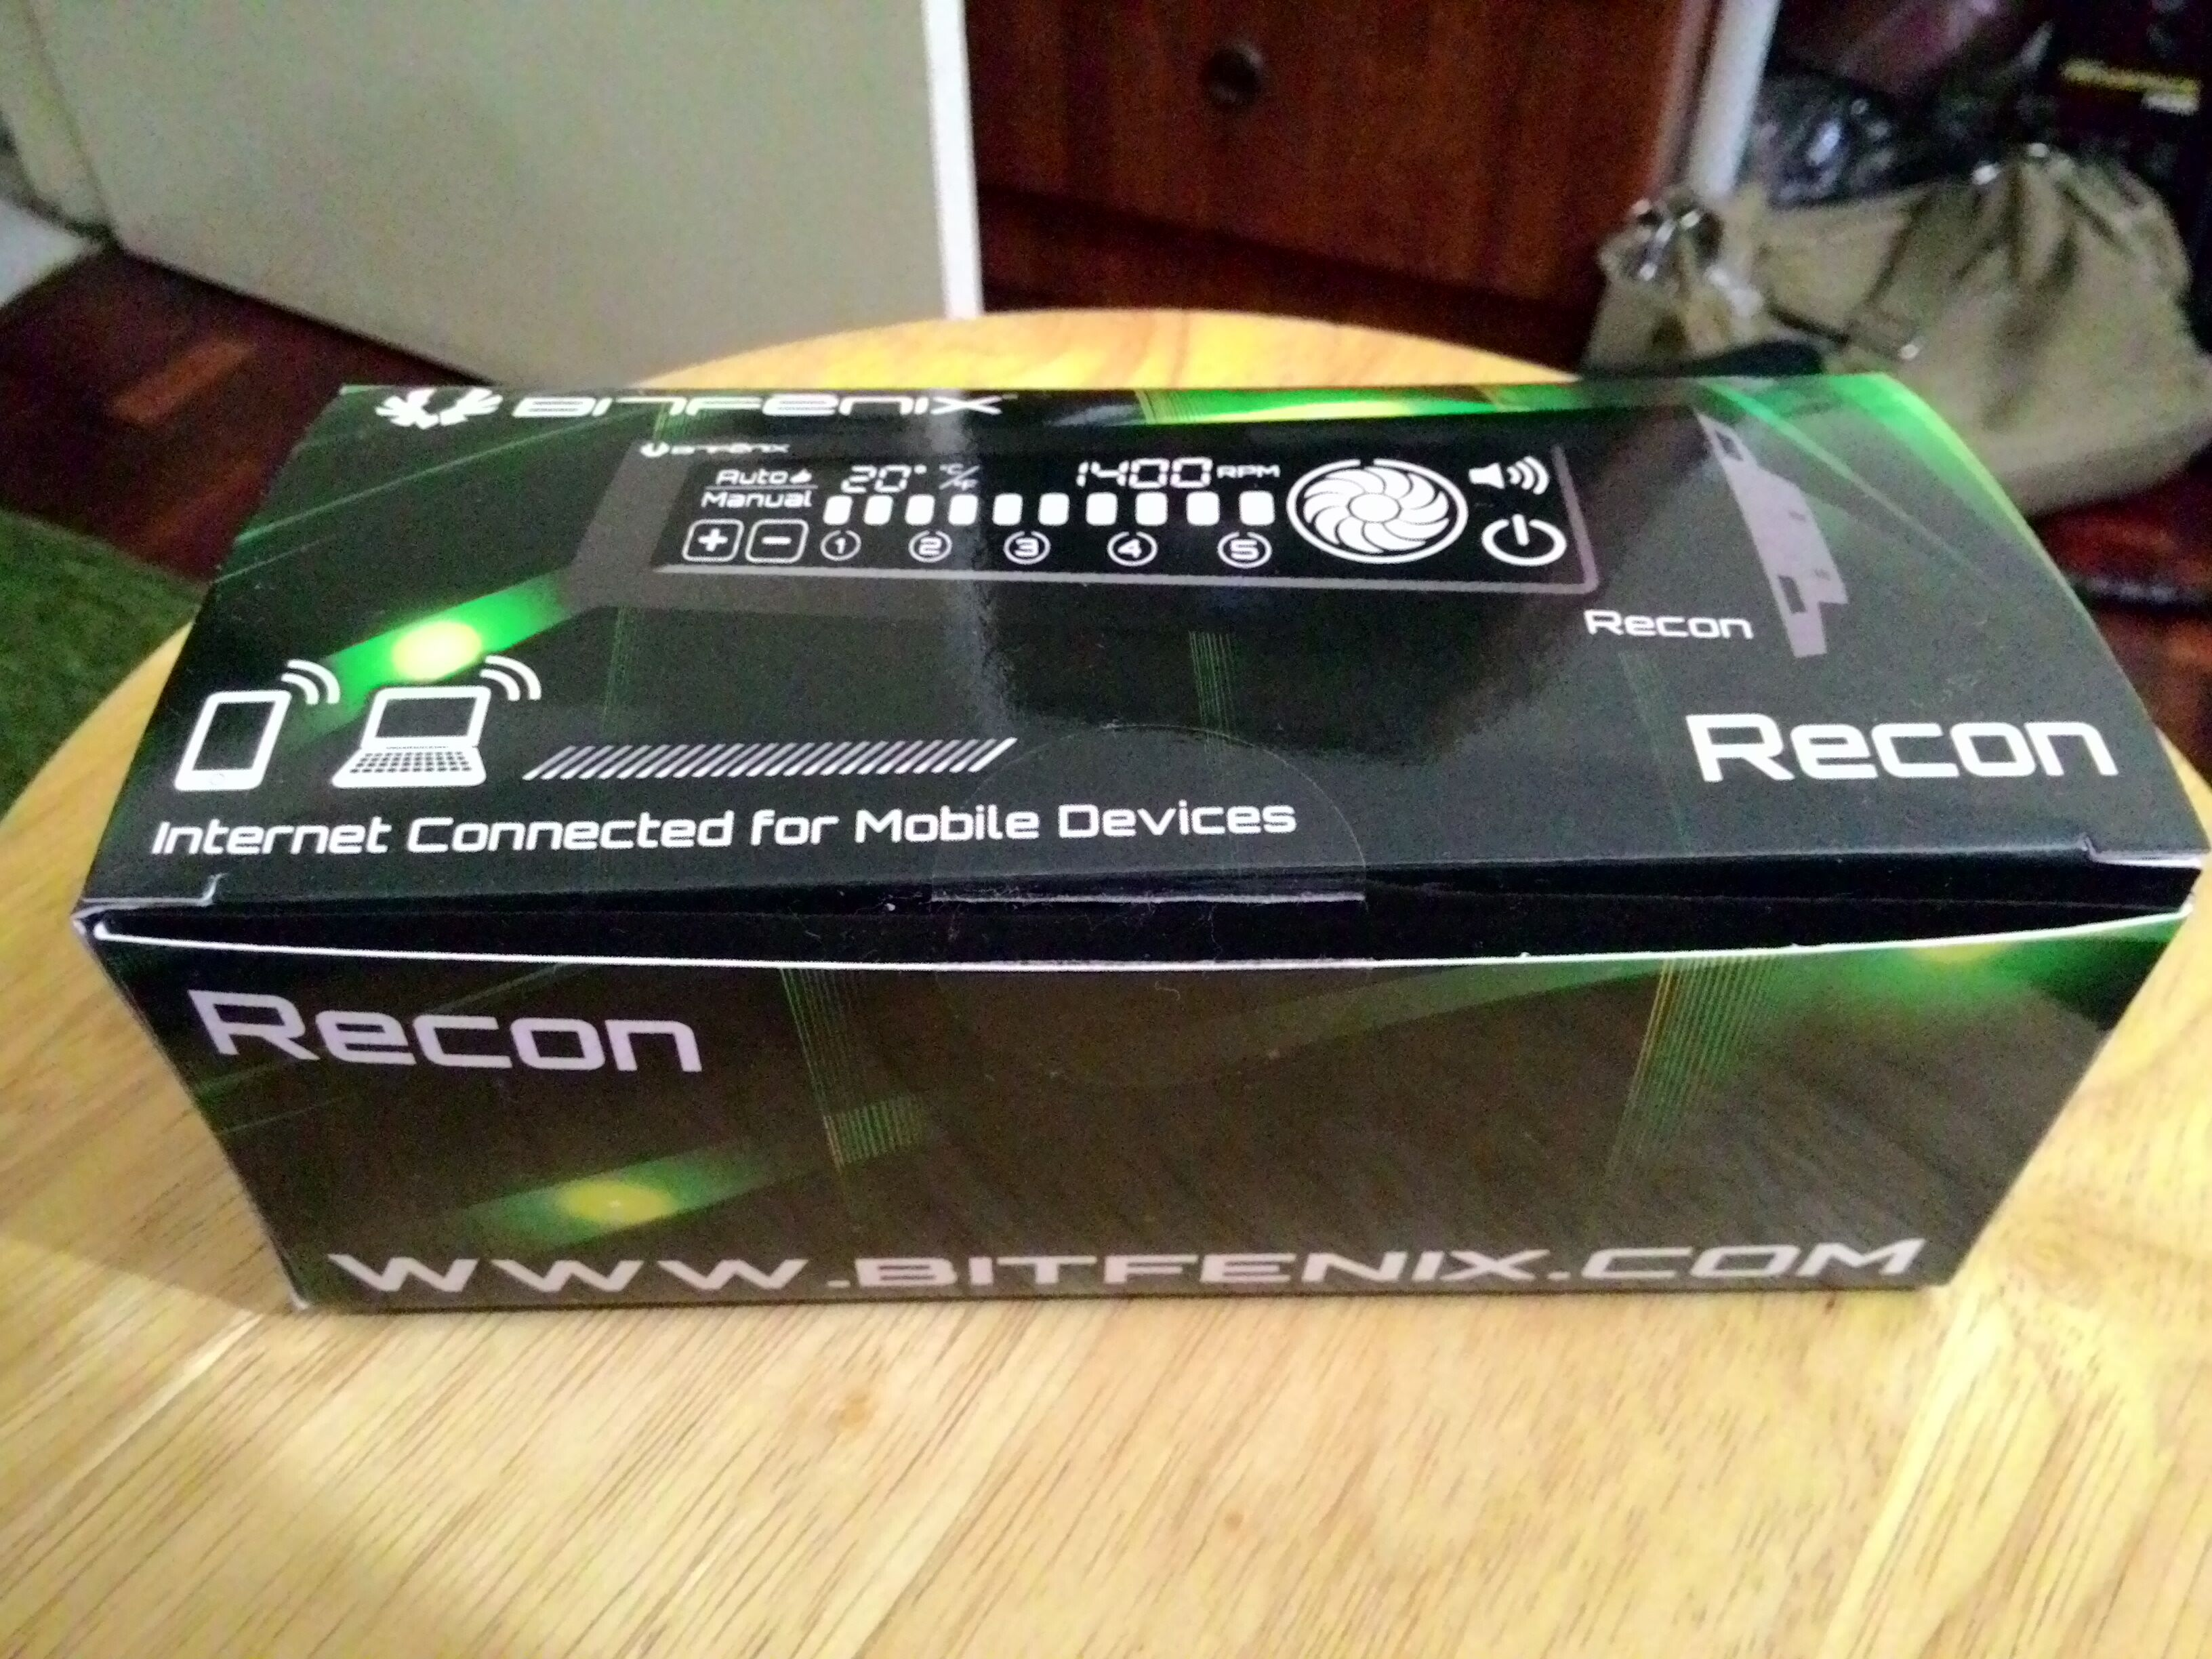 Bitfenix Recon Review 30